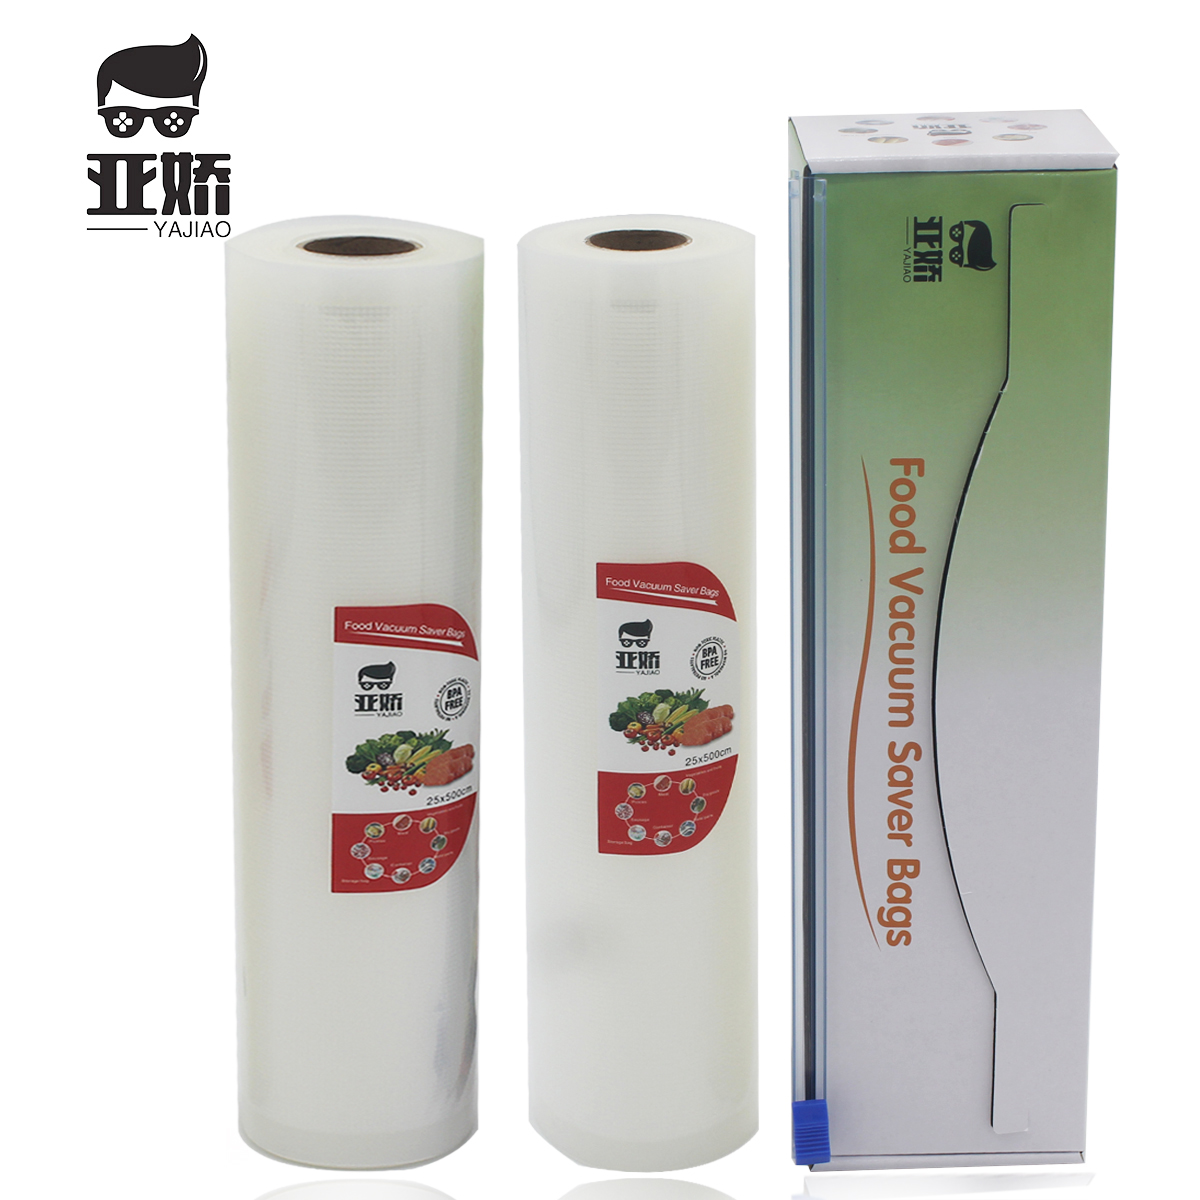 YAJIAO 2rolls 25*500cm Vacuum Sealer Bag With Cutting Knife Box For Vacuum Sealer Food Fresh Kitchen Long Keeping Storage Bag